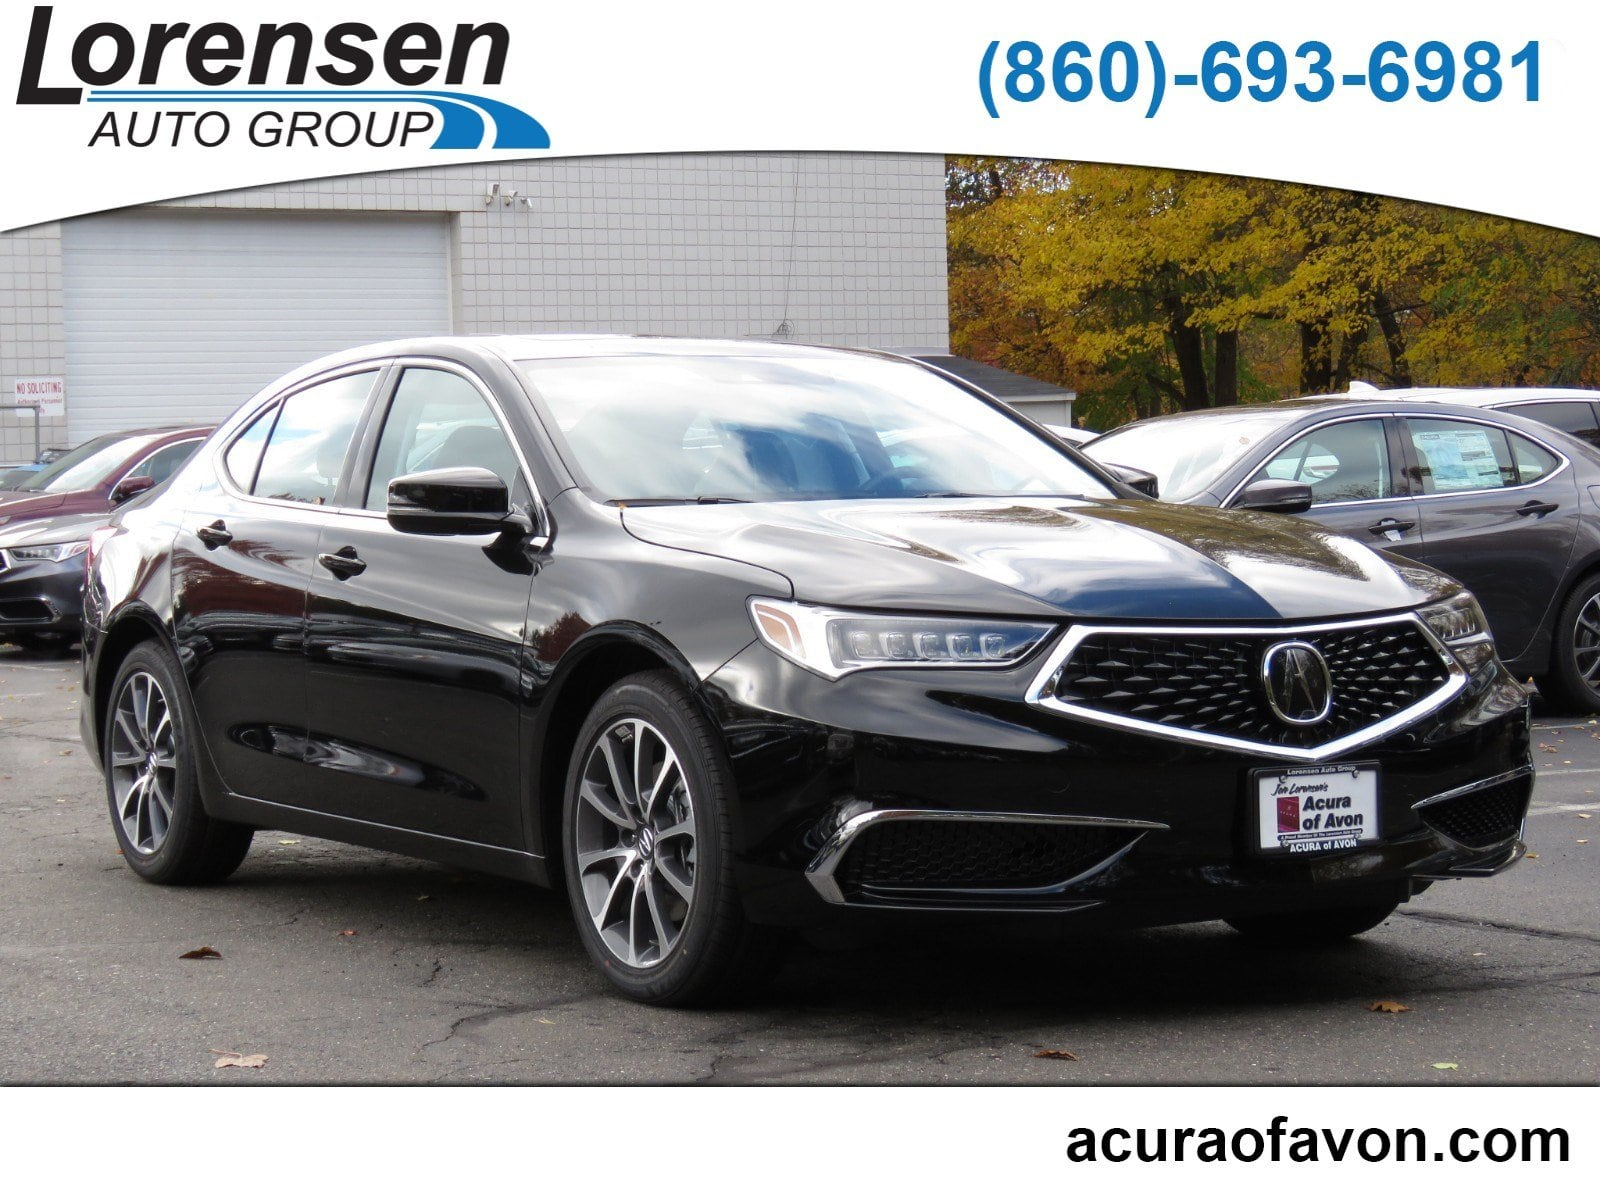 New 2019 Acura TLX 3 5 V 6 9 AT P AWS 3 5L FWD in Canton